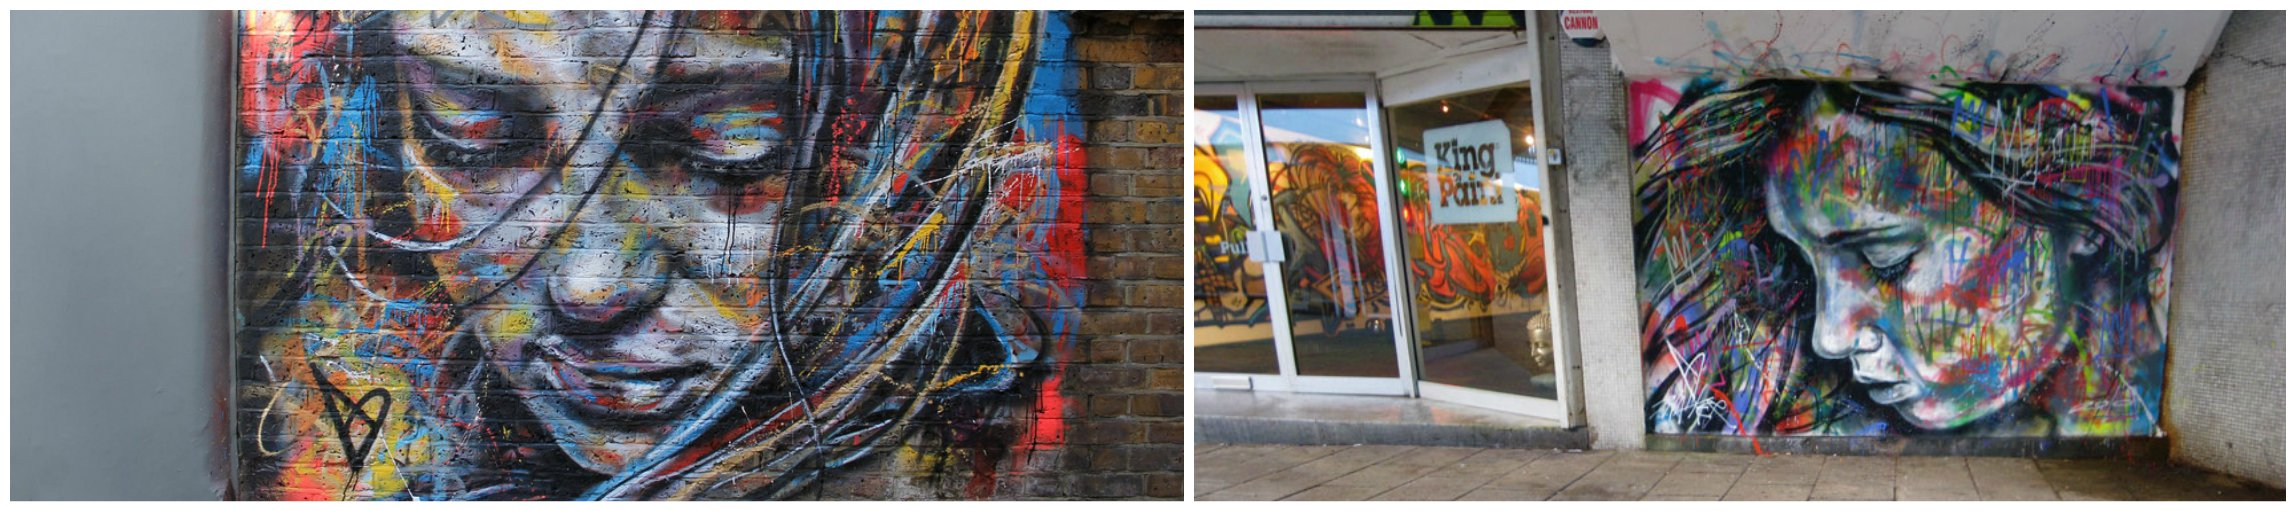 David Walker Collage